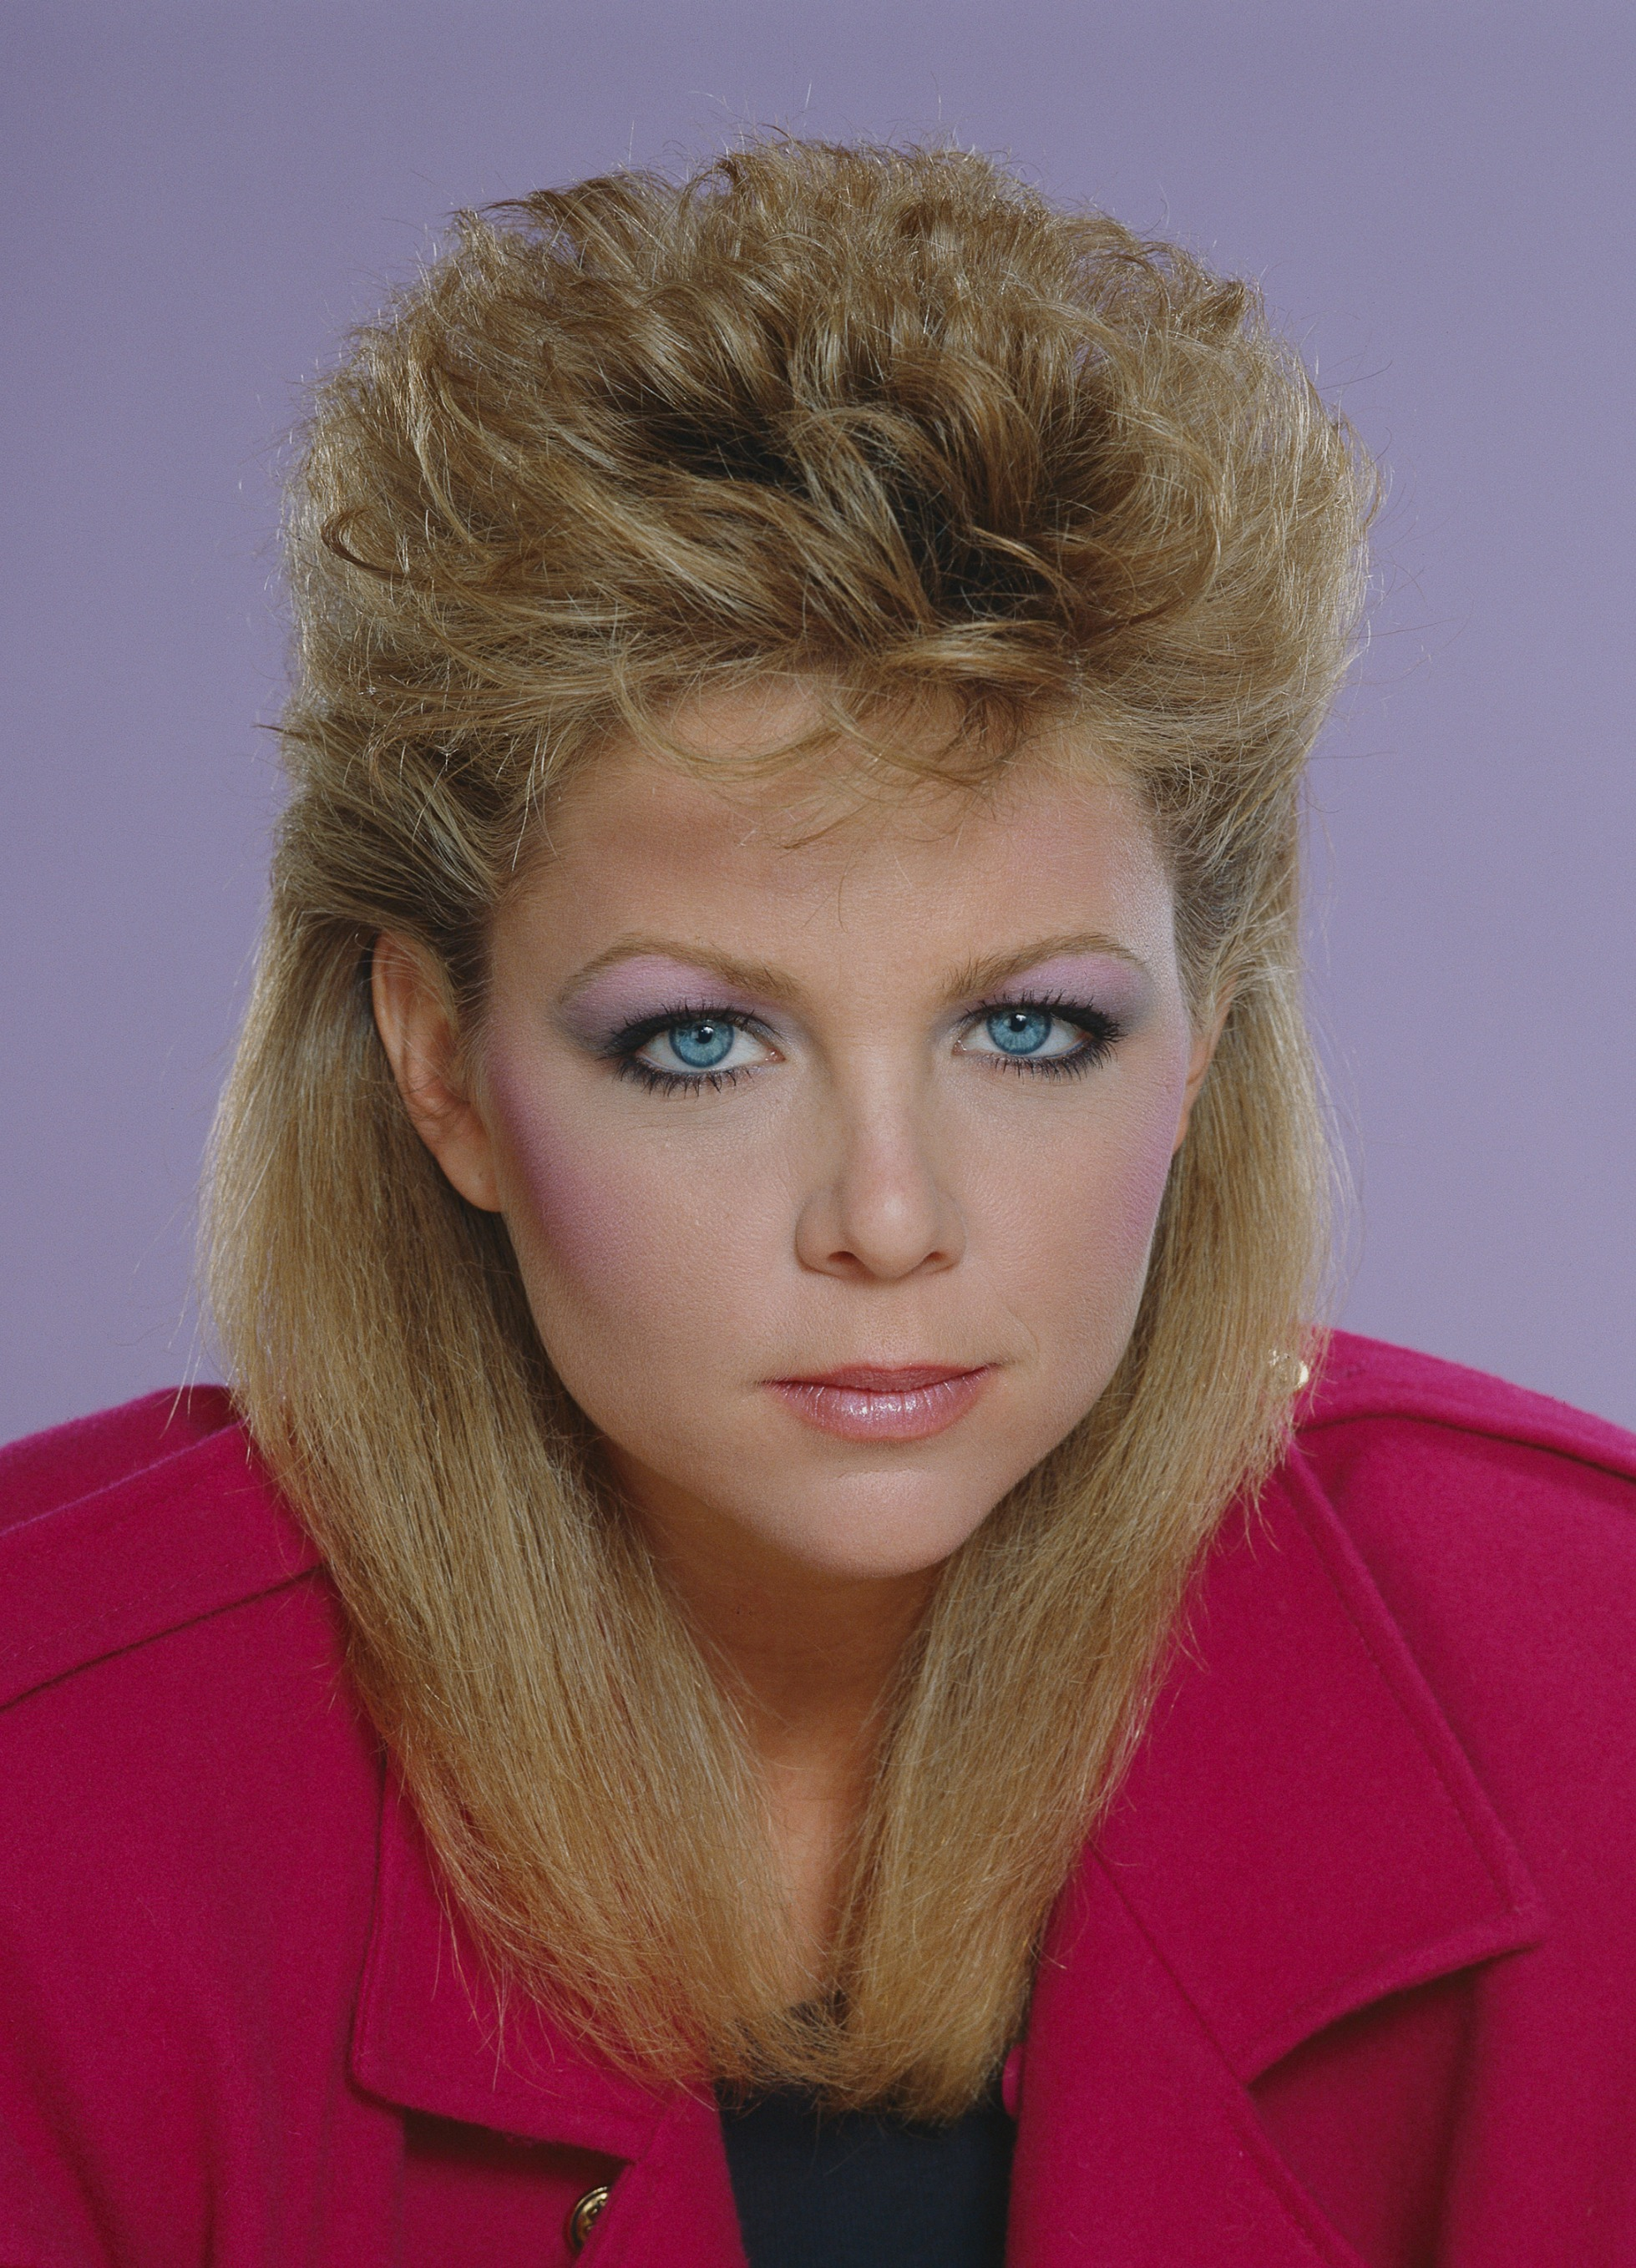 Swell Bad 3980S Beauty Trends Embarrassing Eighties Hairstyles And Hairstyles For Women Draintrainus